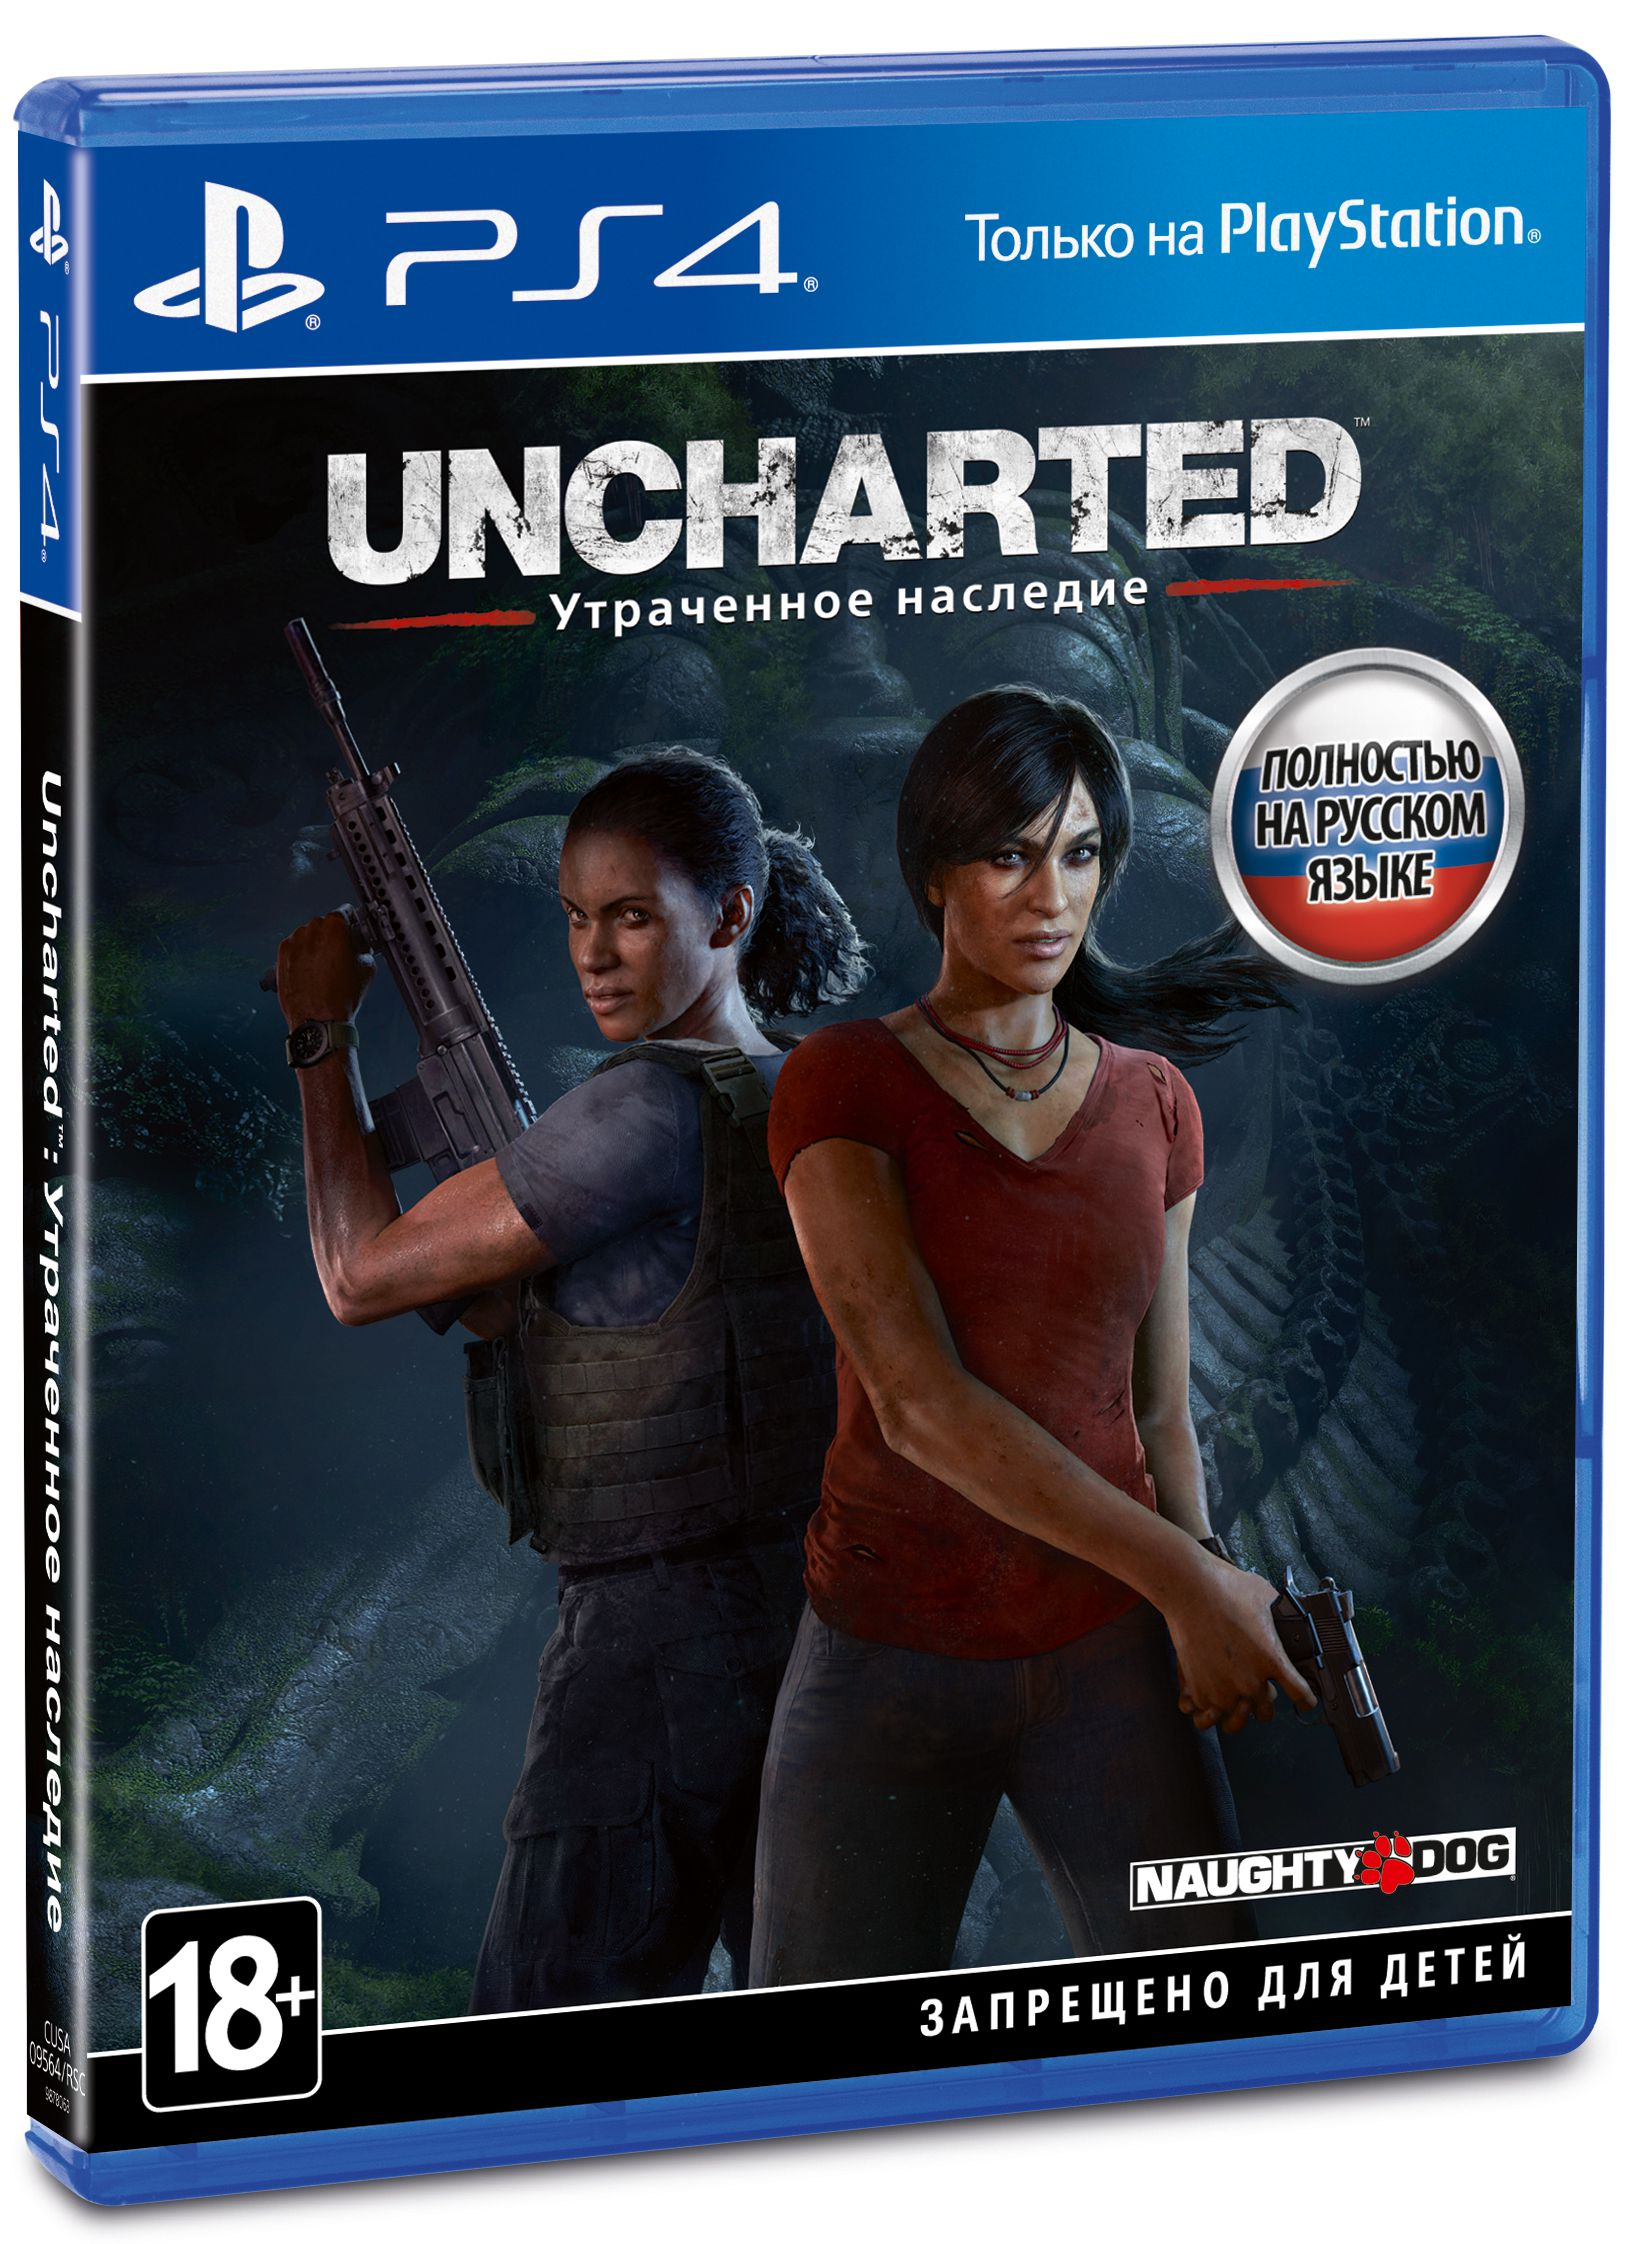 Uncharted: Утраченное наследие (The Lost Legacy) [PS4] uncharted 4 путь вора a thief s end [ps4]